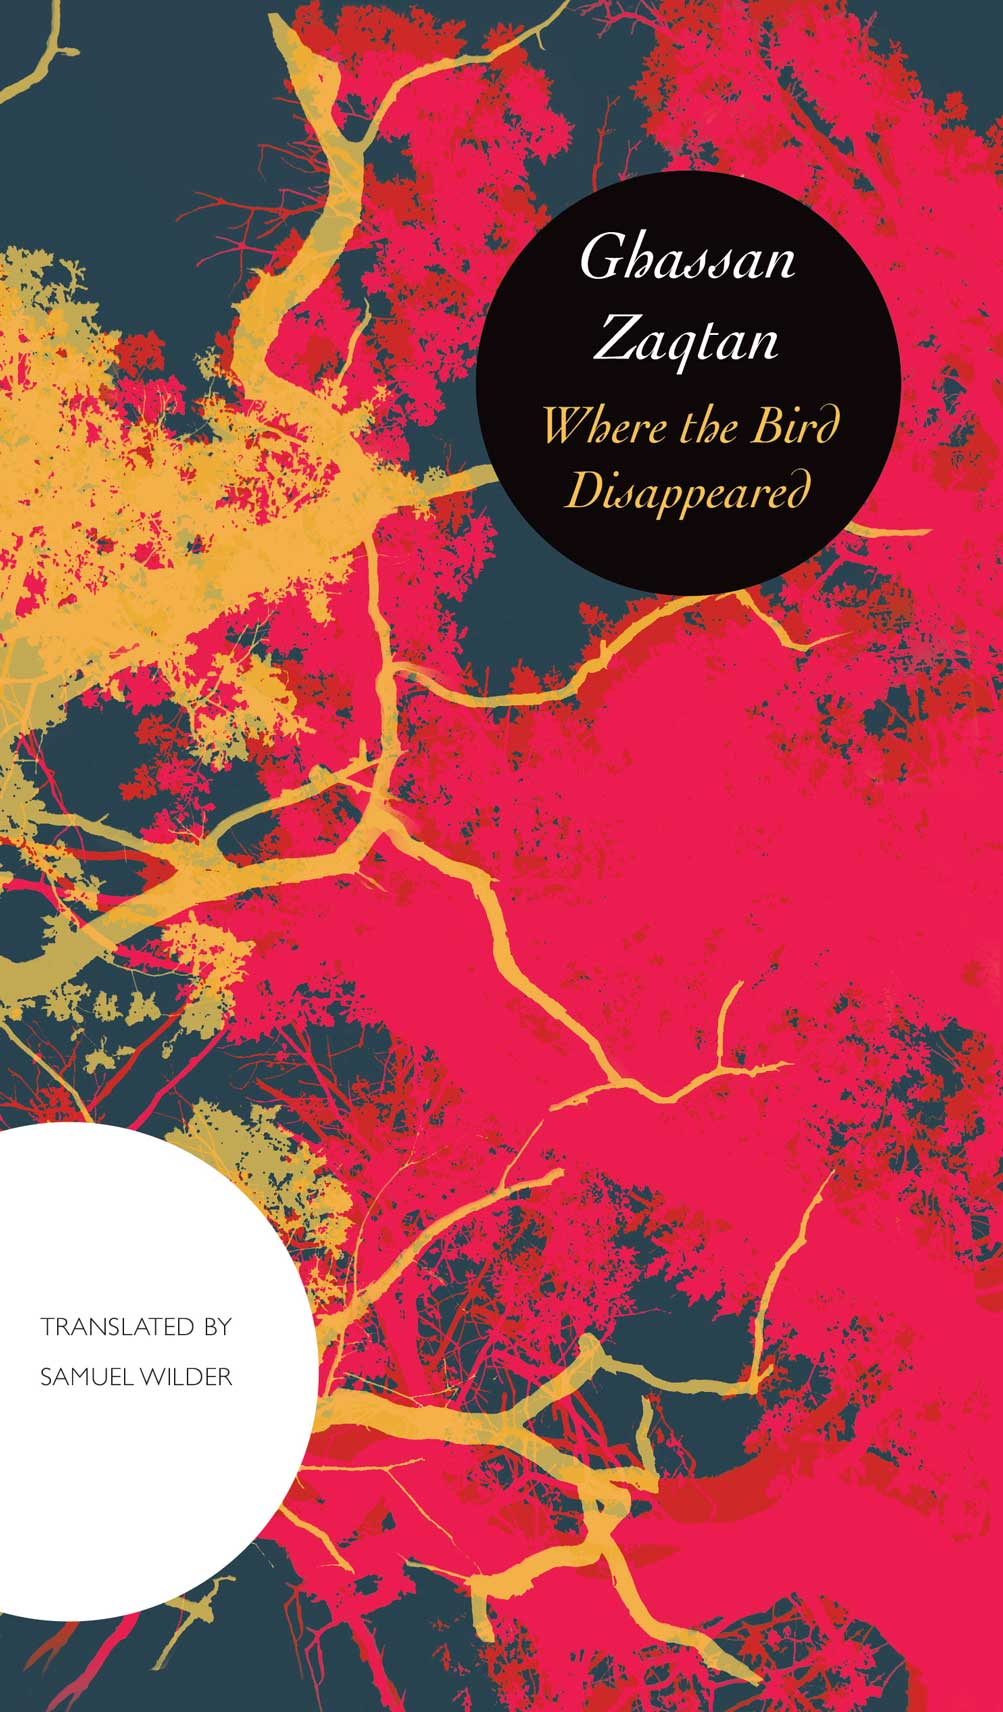 Where the Bird Disappeared by Ghassan Zaqtan | Seagull Books